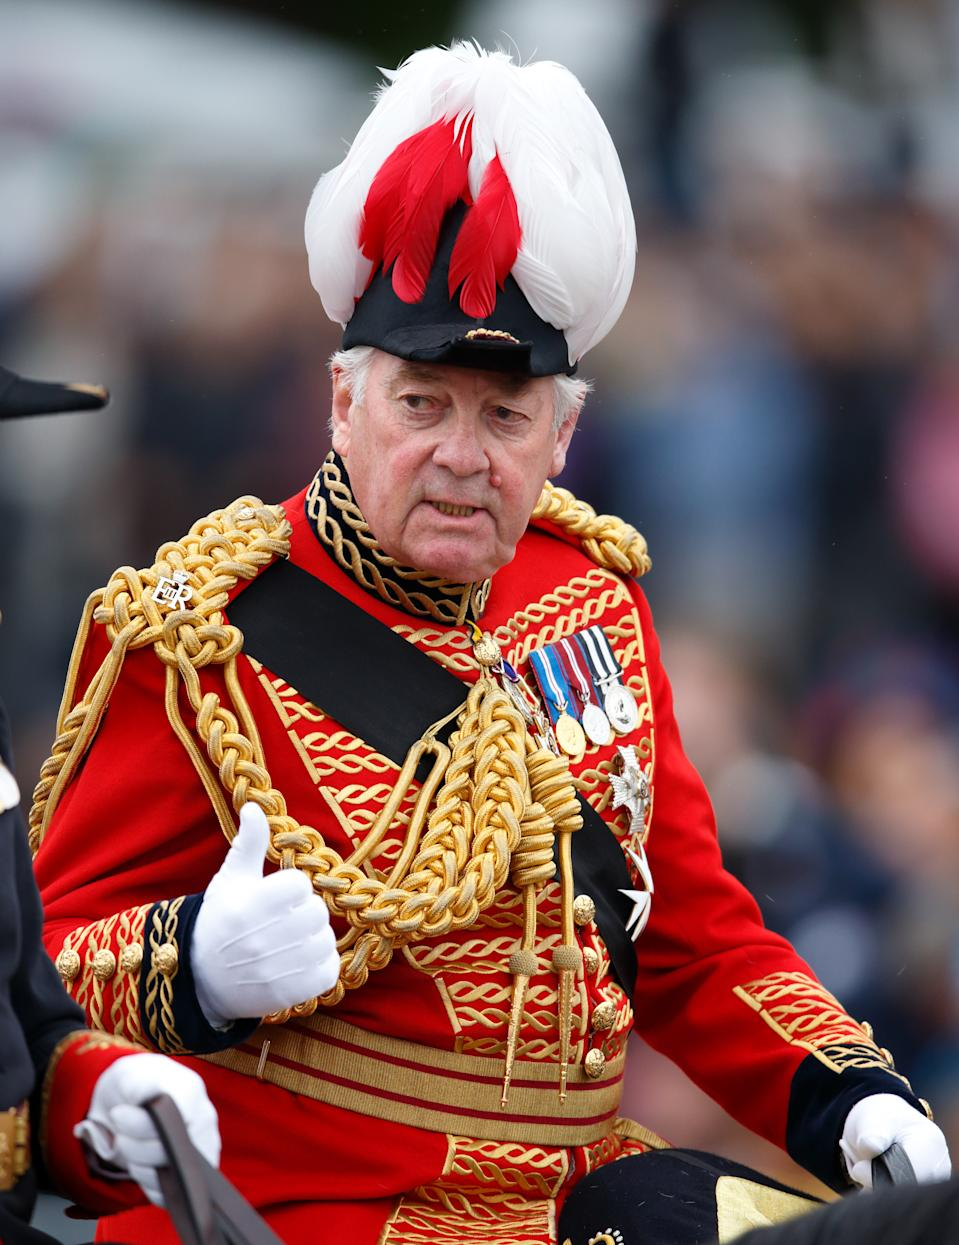 LONDON, UNITED KINGDOM - JUNE 13: (EMBARGOED FOR PUBLICATION IN UK NEWSPAPERS UNTIL 48 HOURS AFTER CREATE DATE AND TIME) Lord Samuel Vestey attends Trooping the Colour on June 13, 2015 in London, England. The ceremony is Queen Elizabeth II's annual birthday parade and dates back to the time of Charles II in the 17th Century, when the Colours of a regiment were used as a rallying point in battle. (Photo by Max Mumby/Indigo/Getty Images)